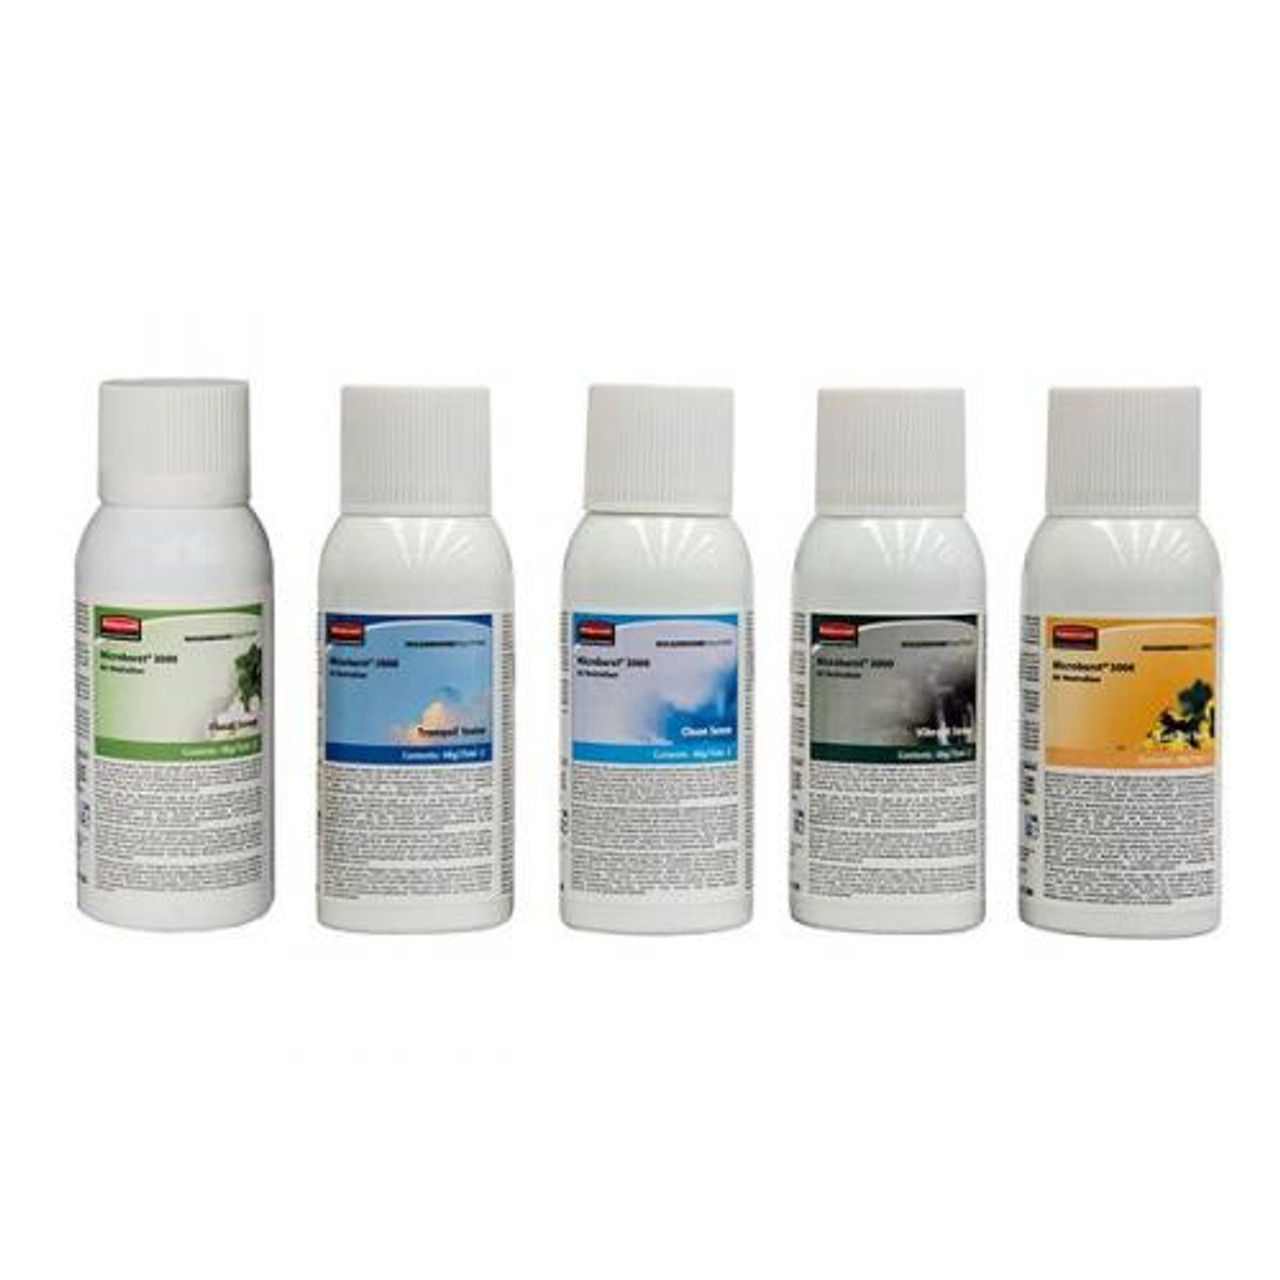 Rubbermaid Microburst 3000 Preference Pack 75ml Aerosol